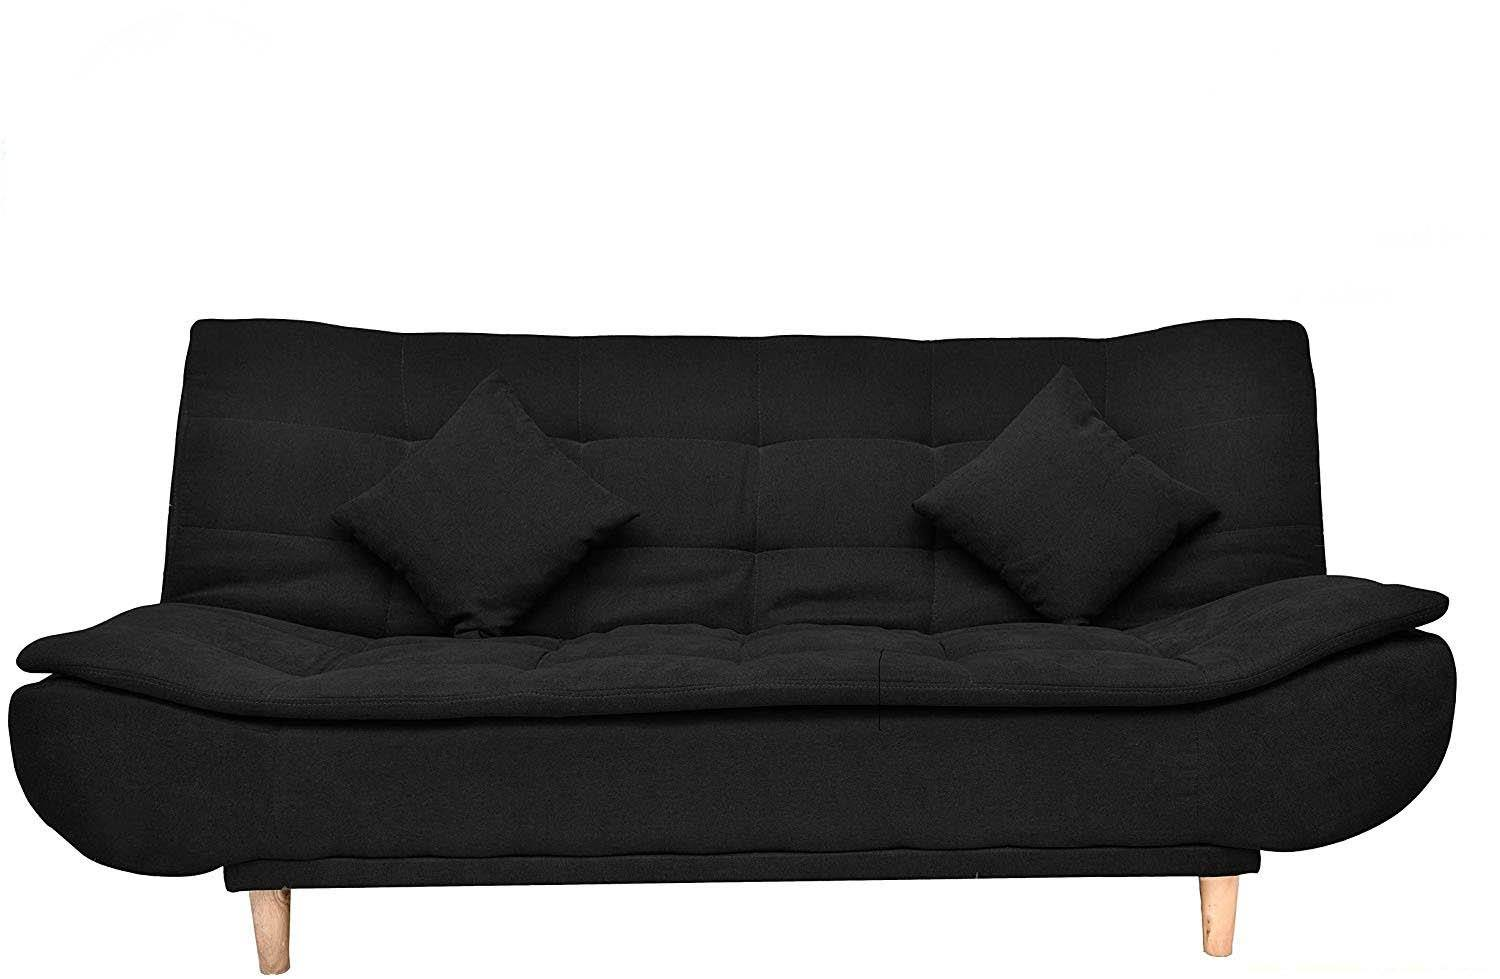 Jermine-Black Sofacum Bed Yellowliving Online Bangalore